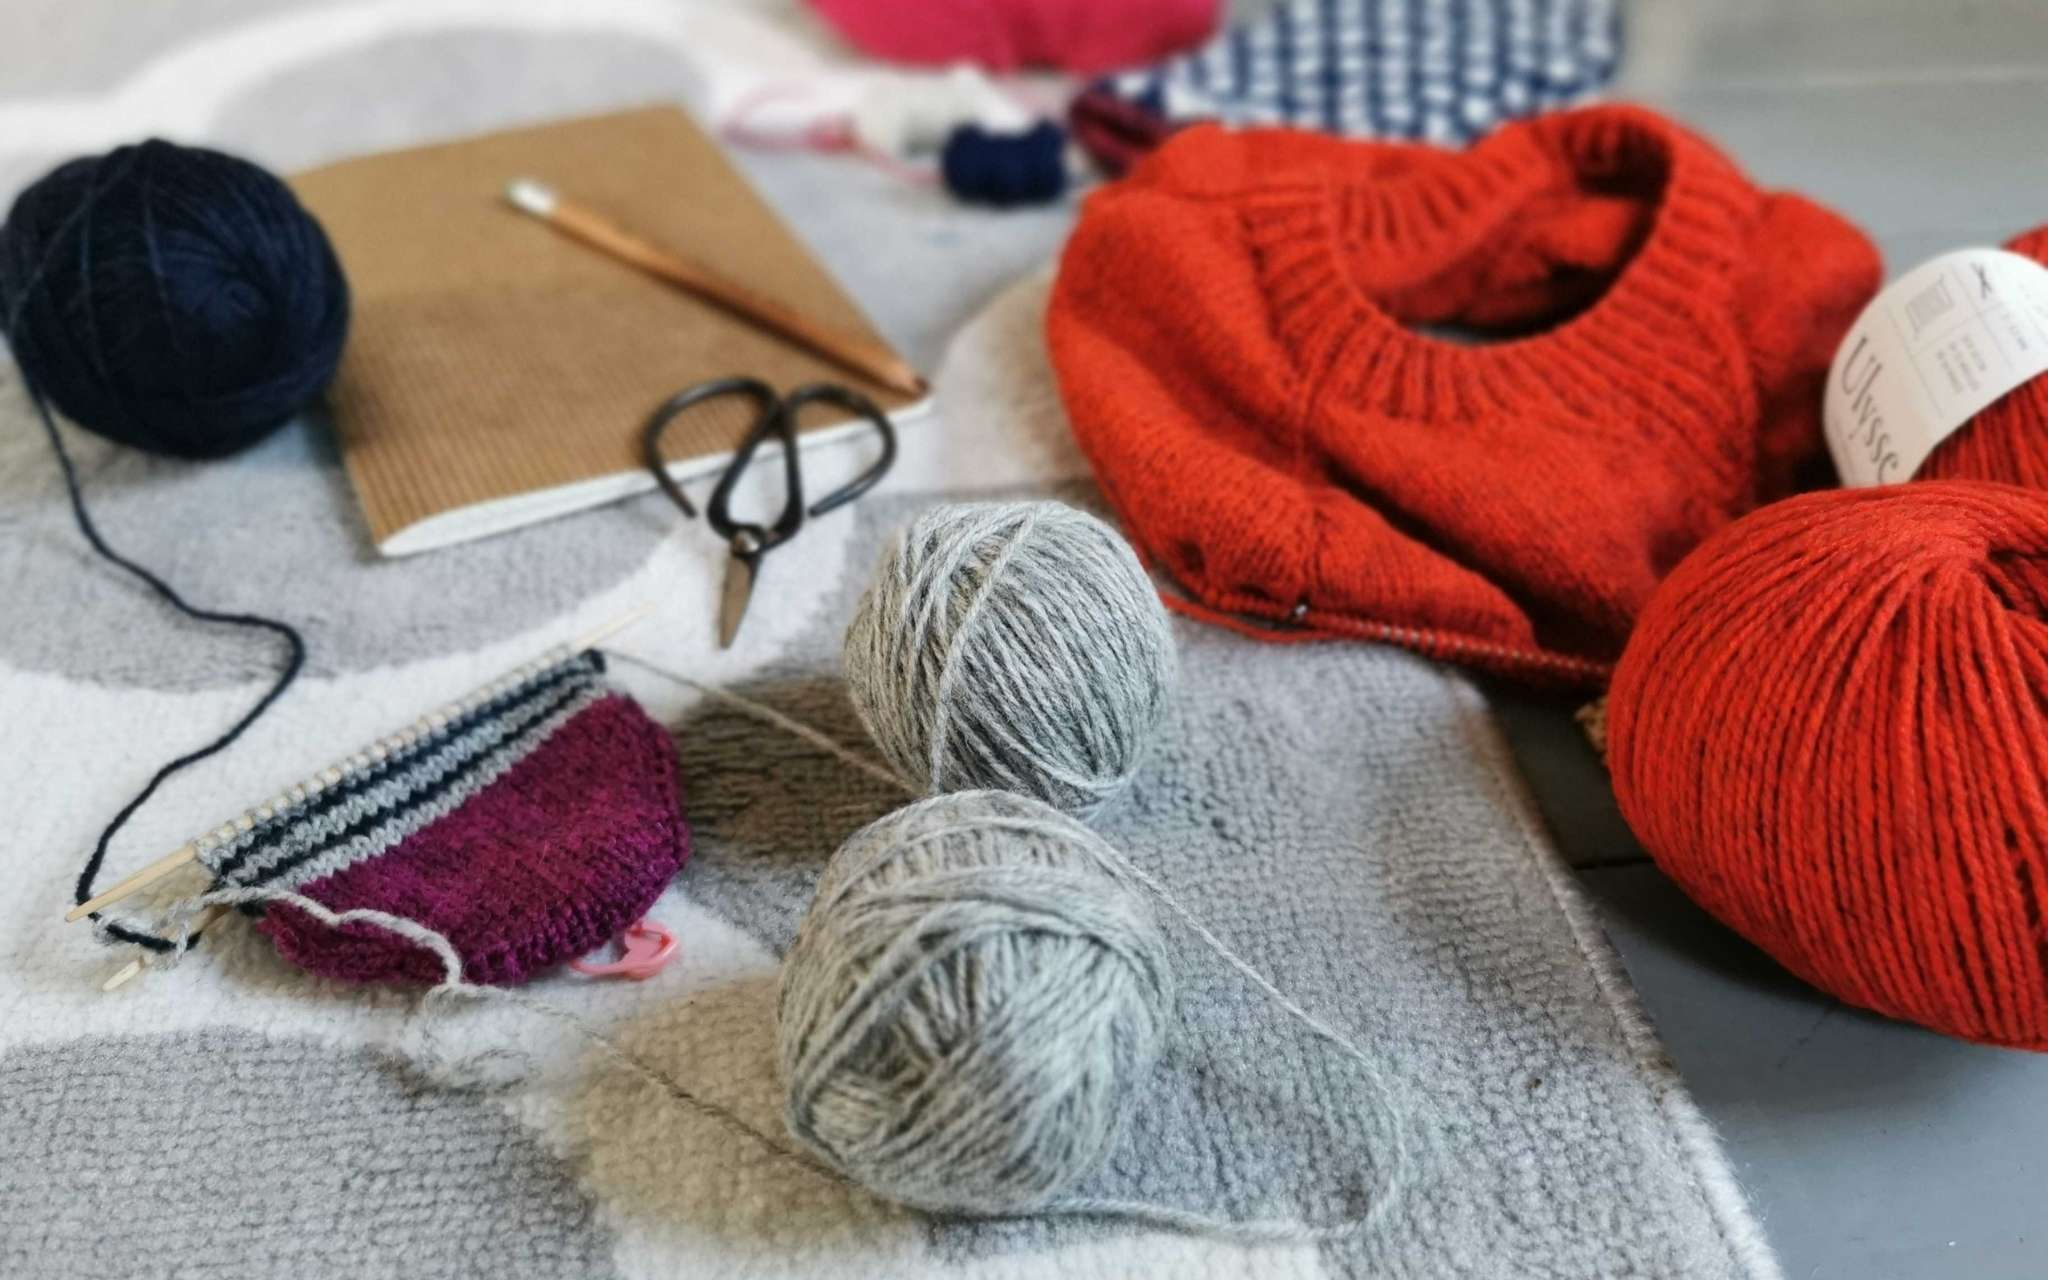 A pile of knitting projects on the needles including an orange sweater, striped socks next to a notebook and pencil.